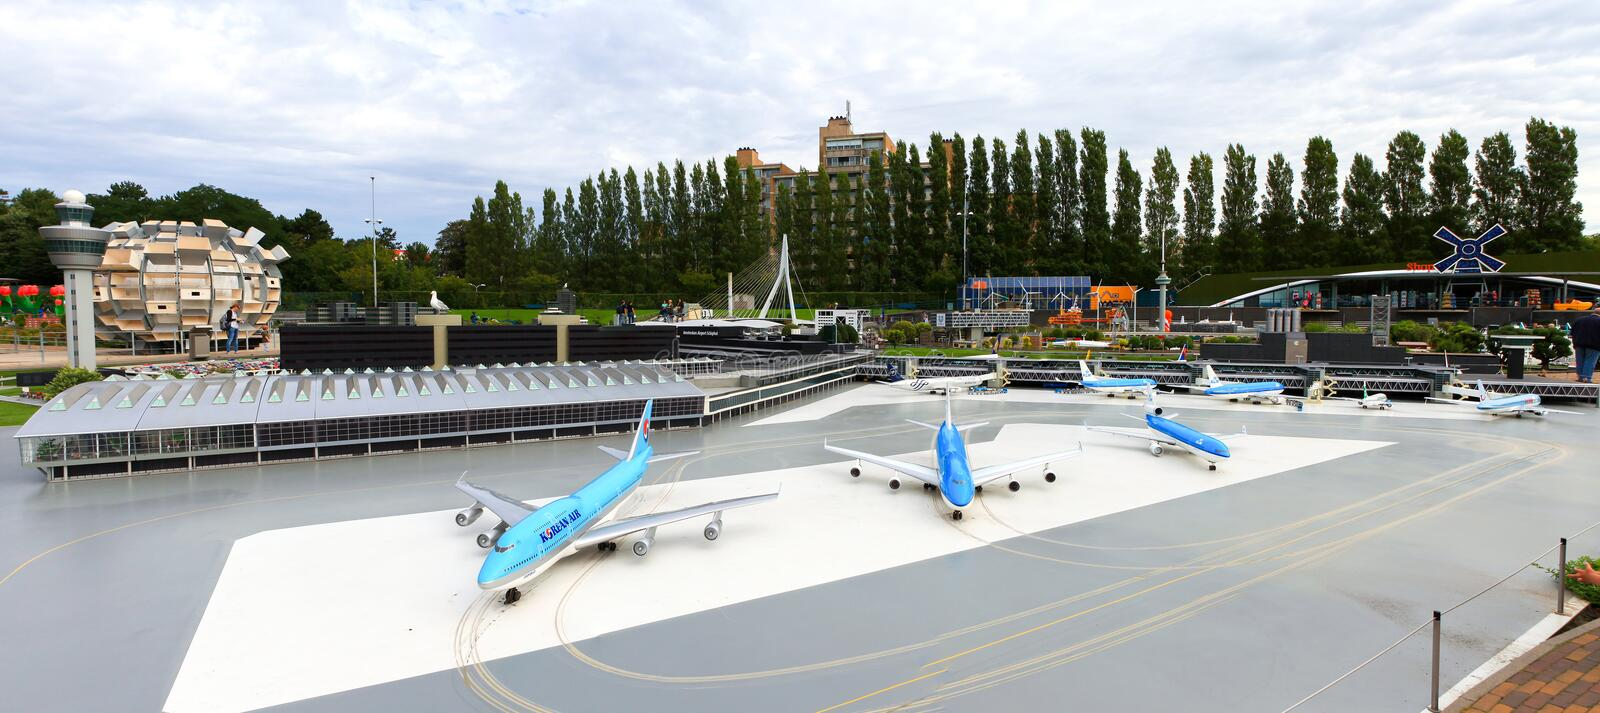 Famous miniature park and tourist attraction of Madurodam. Located in The Hague, home to a range of 1:25 scale model replicas of famous Dutch landmarks royalty free stock photo